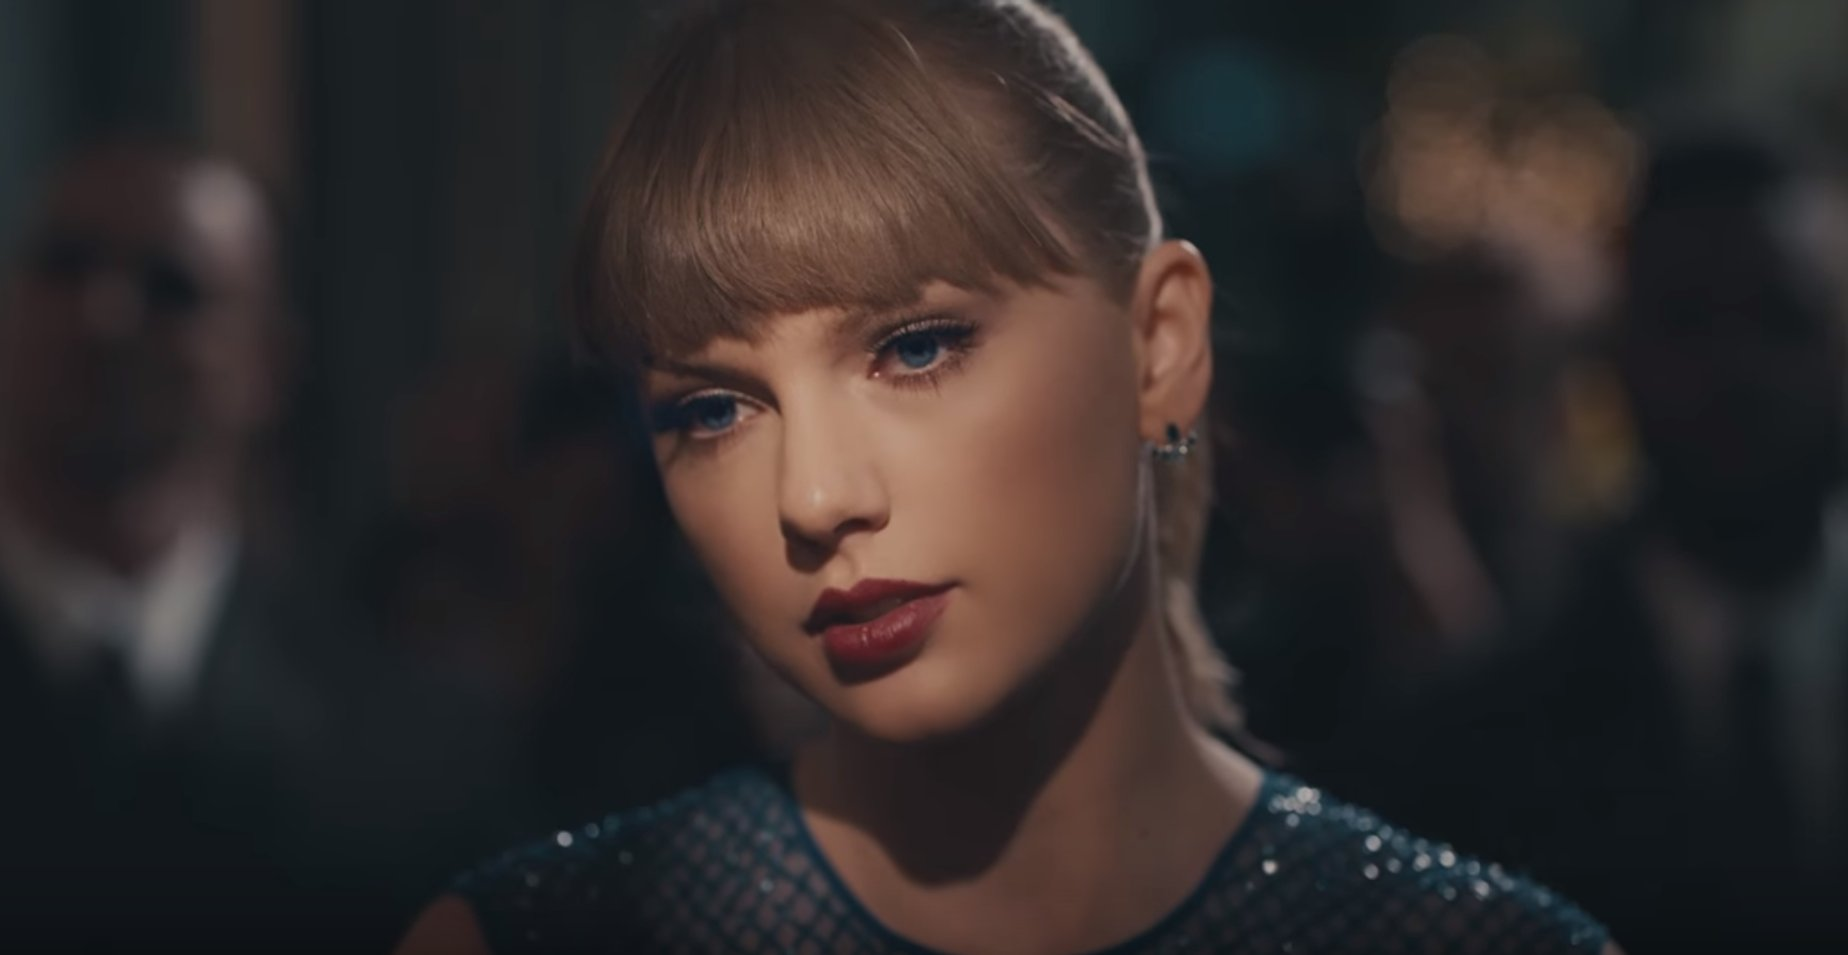 Watch @taylorswift13's new music video for 'Delicate' https://t.co/rKvrQgA0AN https://t.co/OborZPeSY3